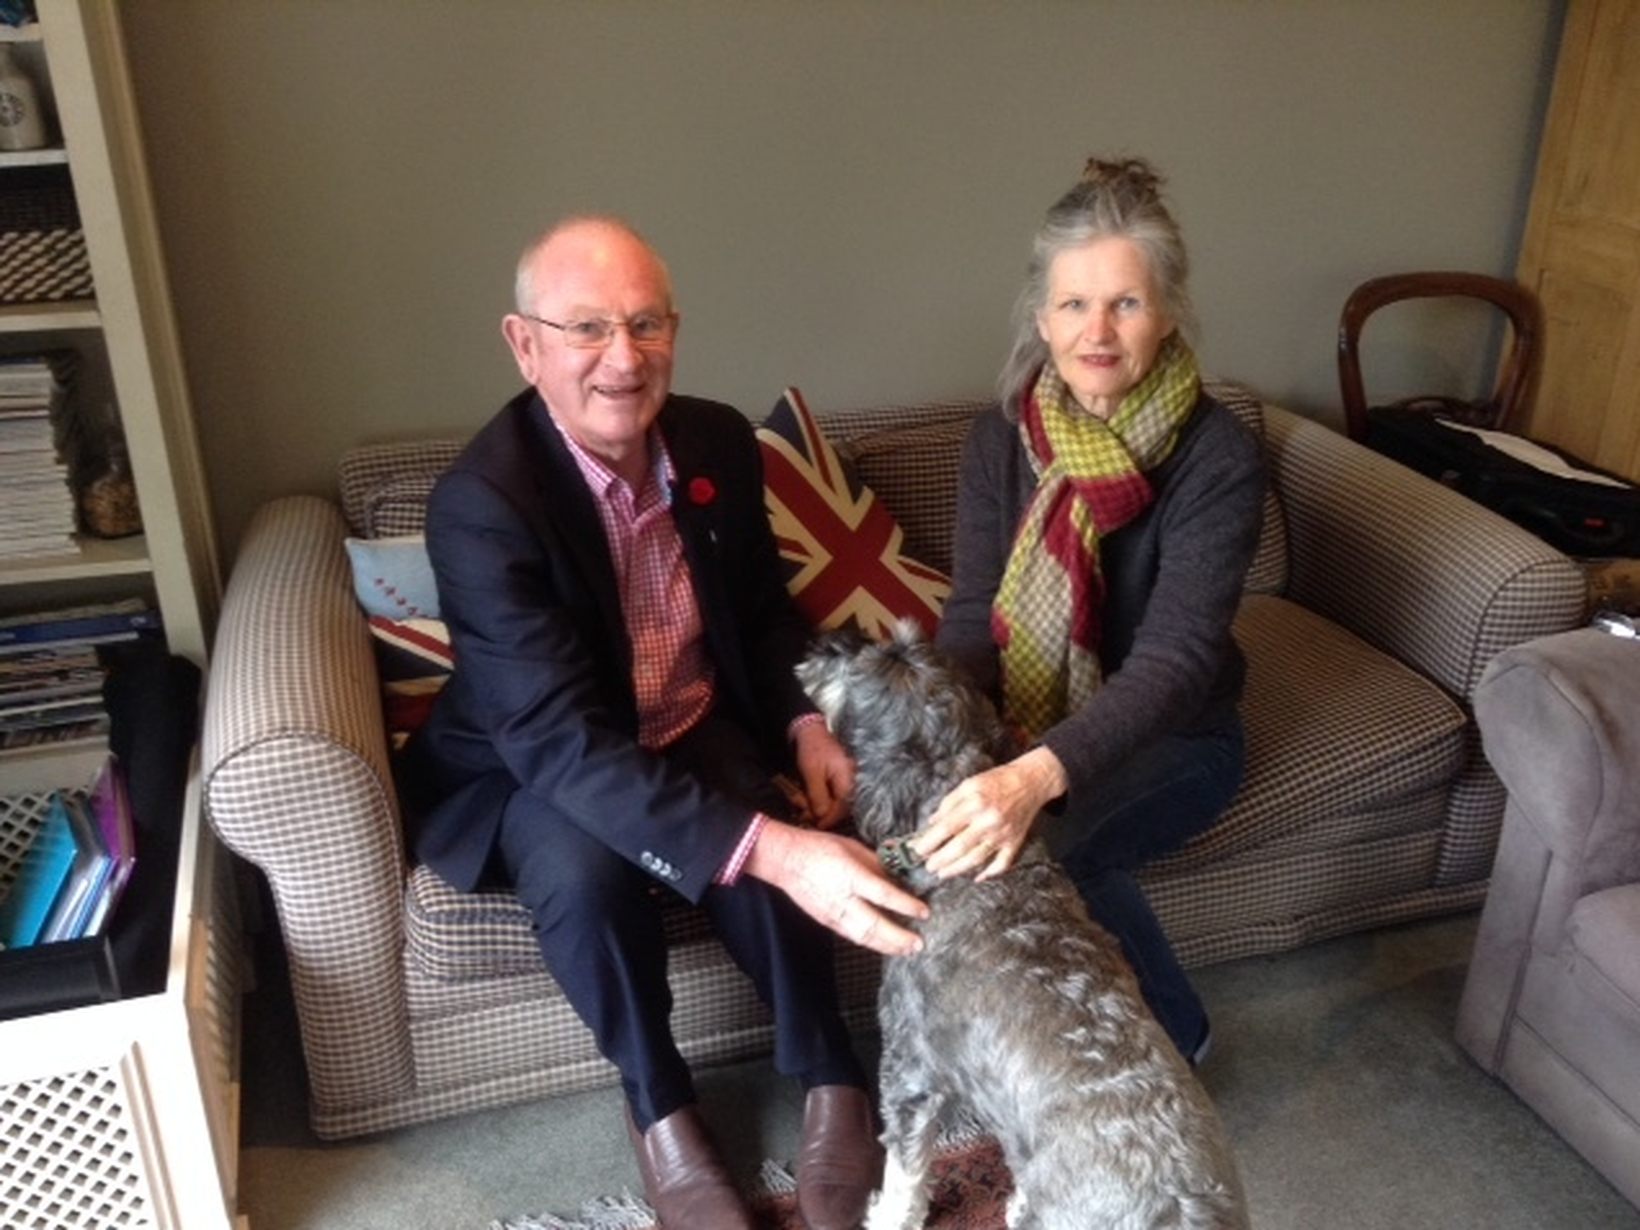 Marie & Robert from Christchurch, New Zealand